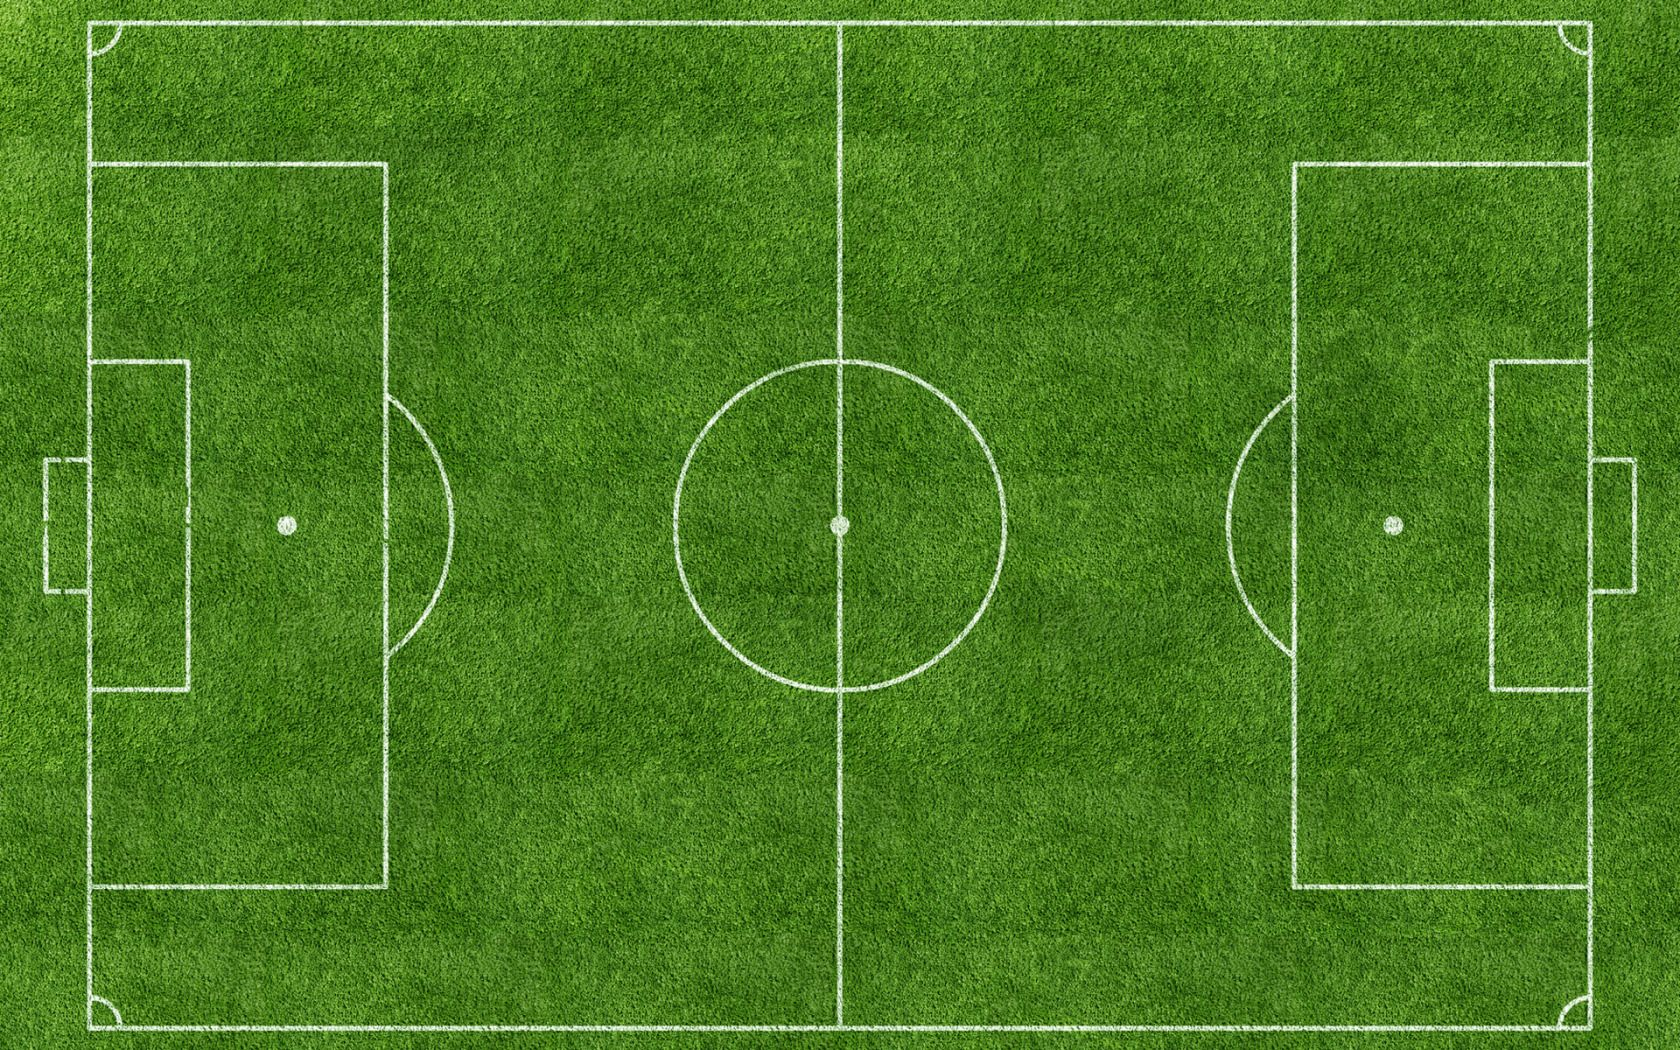 Football Field Hq Football Pitch Soccer Field Football Wallpaper